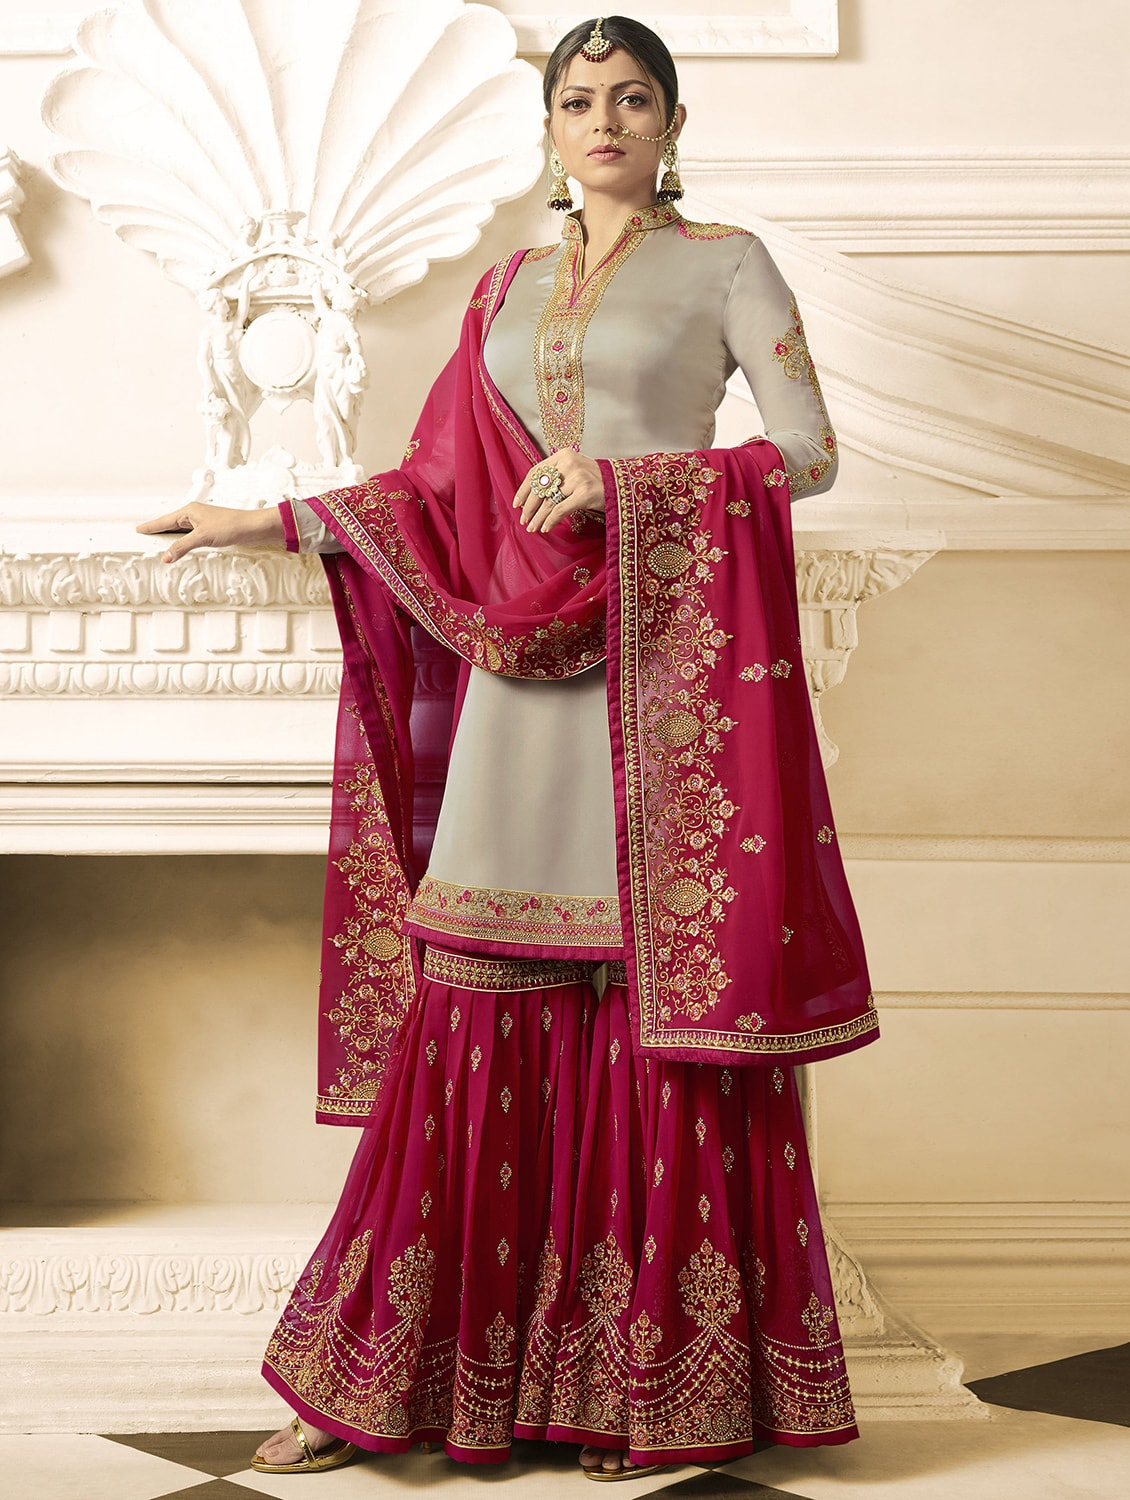 0083f01690b5d Buy Zari Embroidered Sharara Suit for Women from Xclusive Designer for  ₹8498 at 54% off